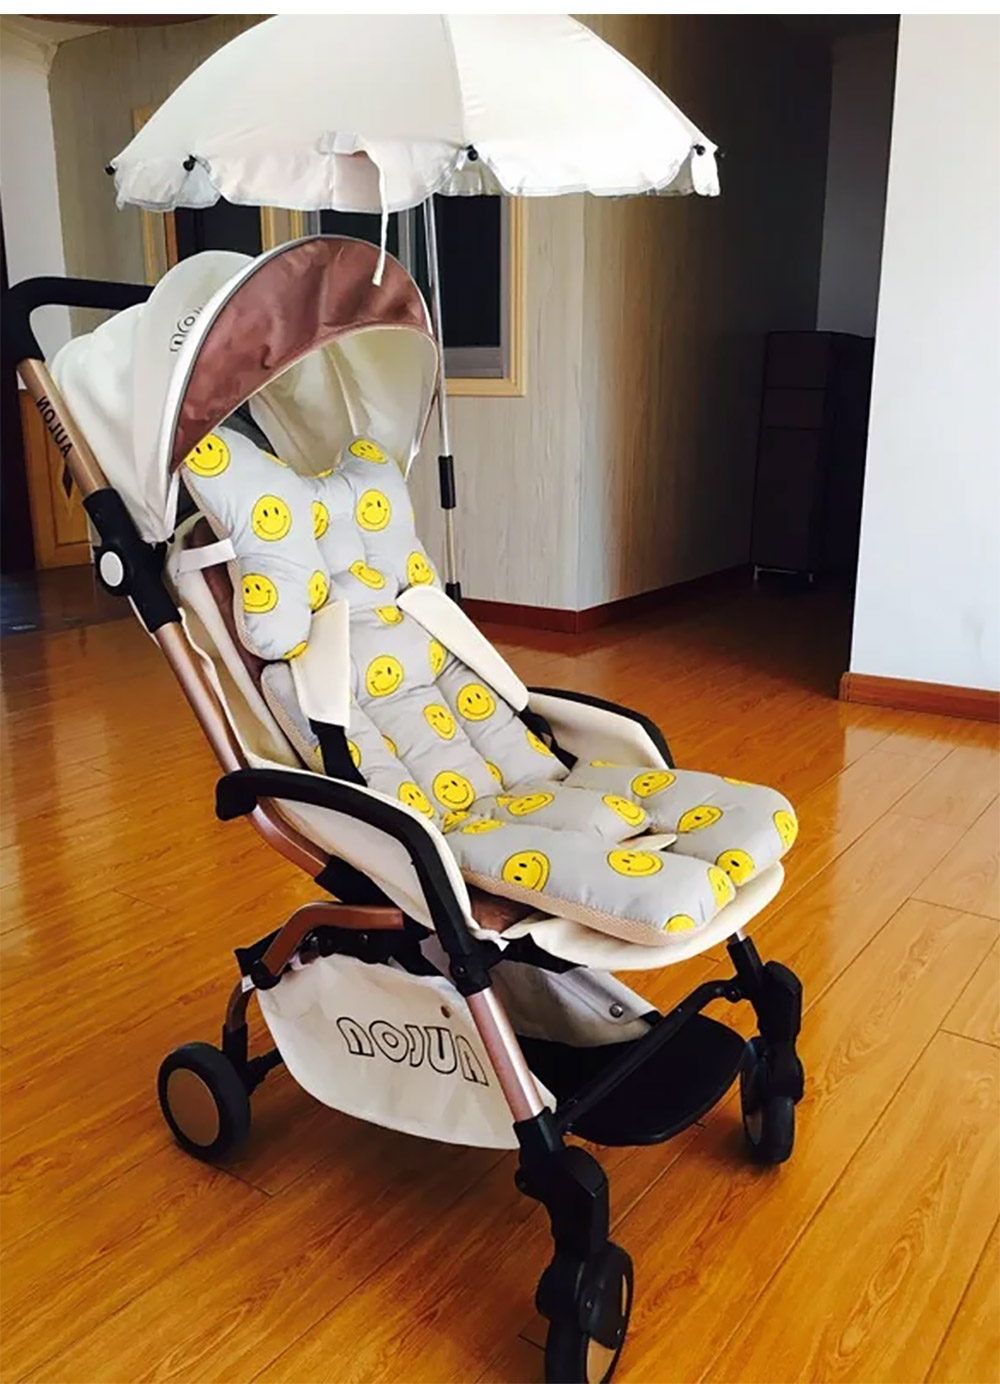 Baby Carriages Cotton Cushion, Stroller Accessories Baby Stroller Cotton Pad Universal Baby Stroller Cotton Protector Mat 18